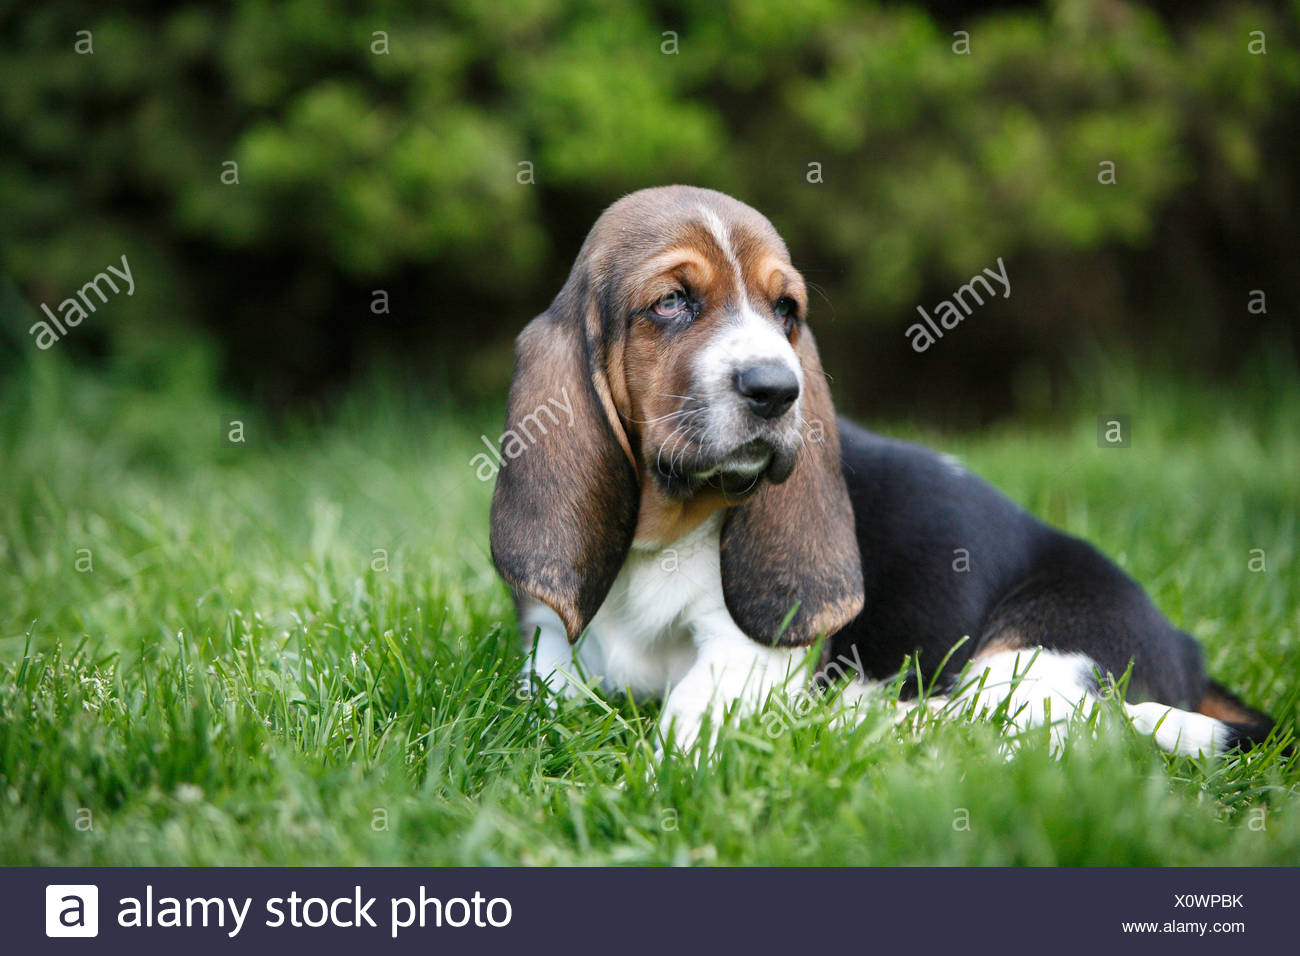 Basset Hound (Canis lupus f. familiaris), puppy sitting in a meadow, Germany - Stock Image